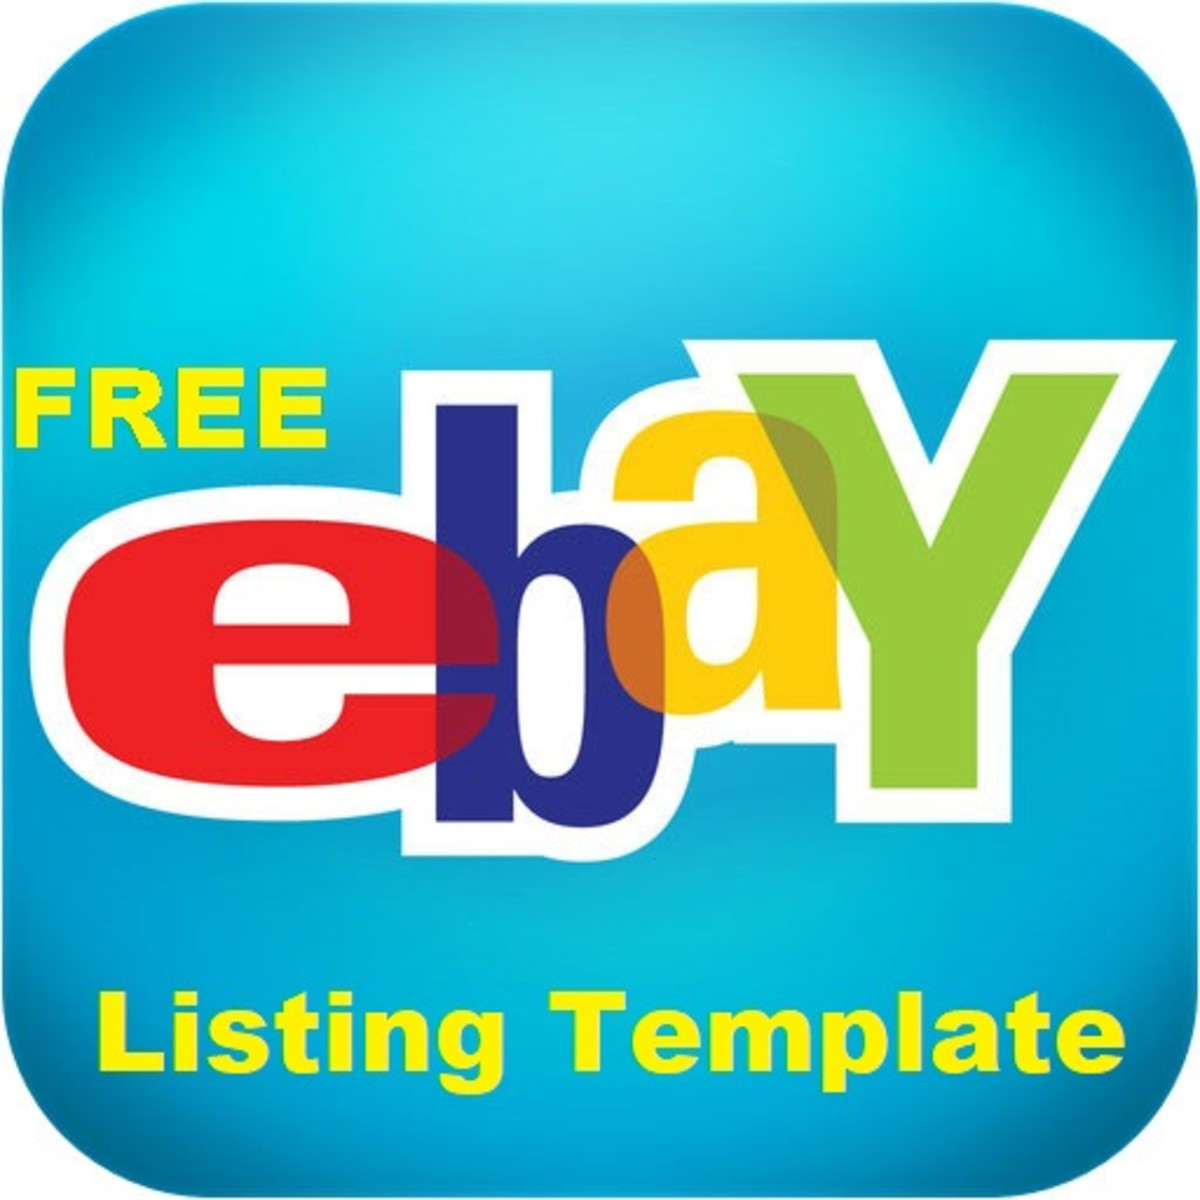 a-free-ebay-listing-template-for-new-sellers